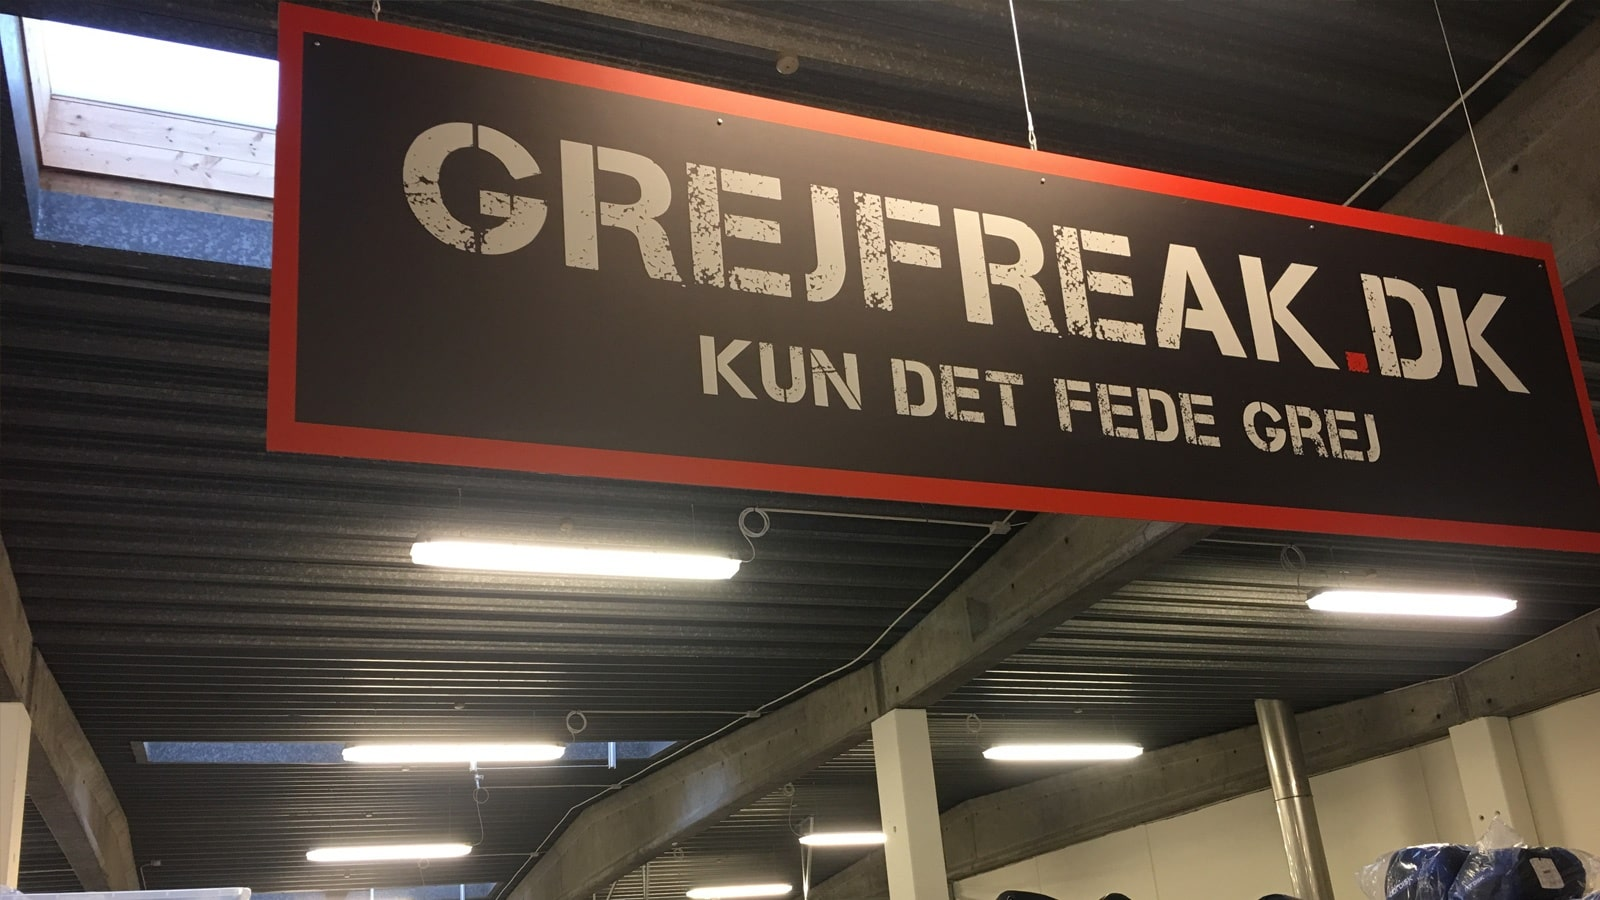 Building a strong partnership with GrejFreak - Part 2